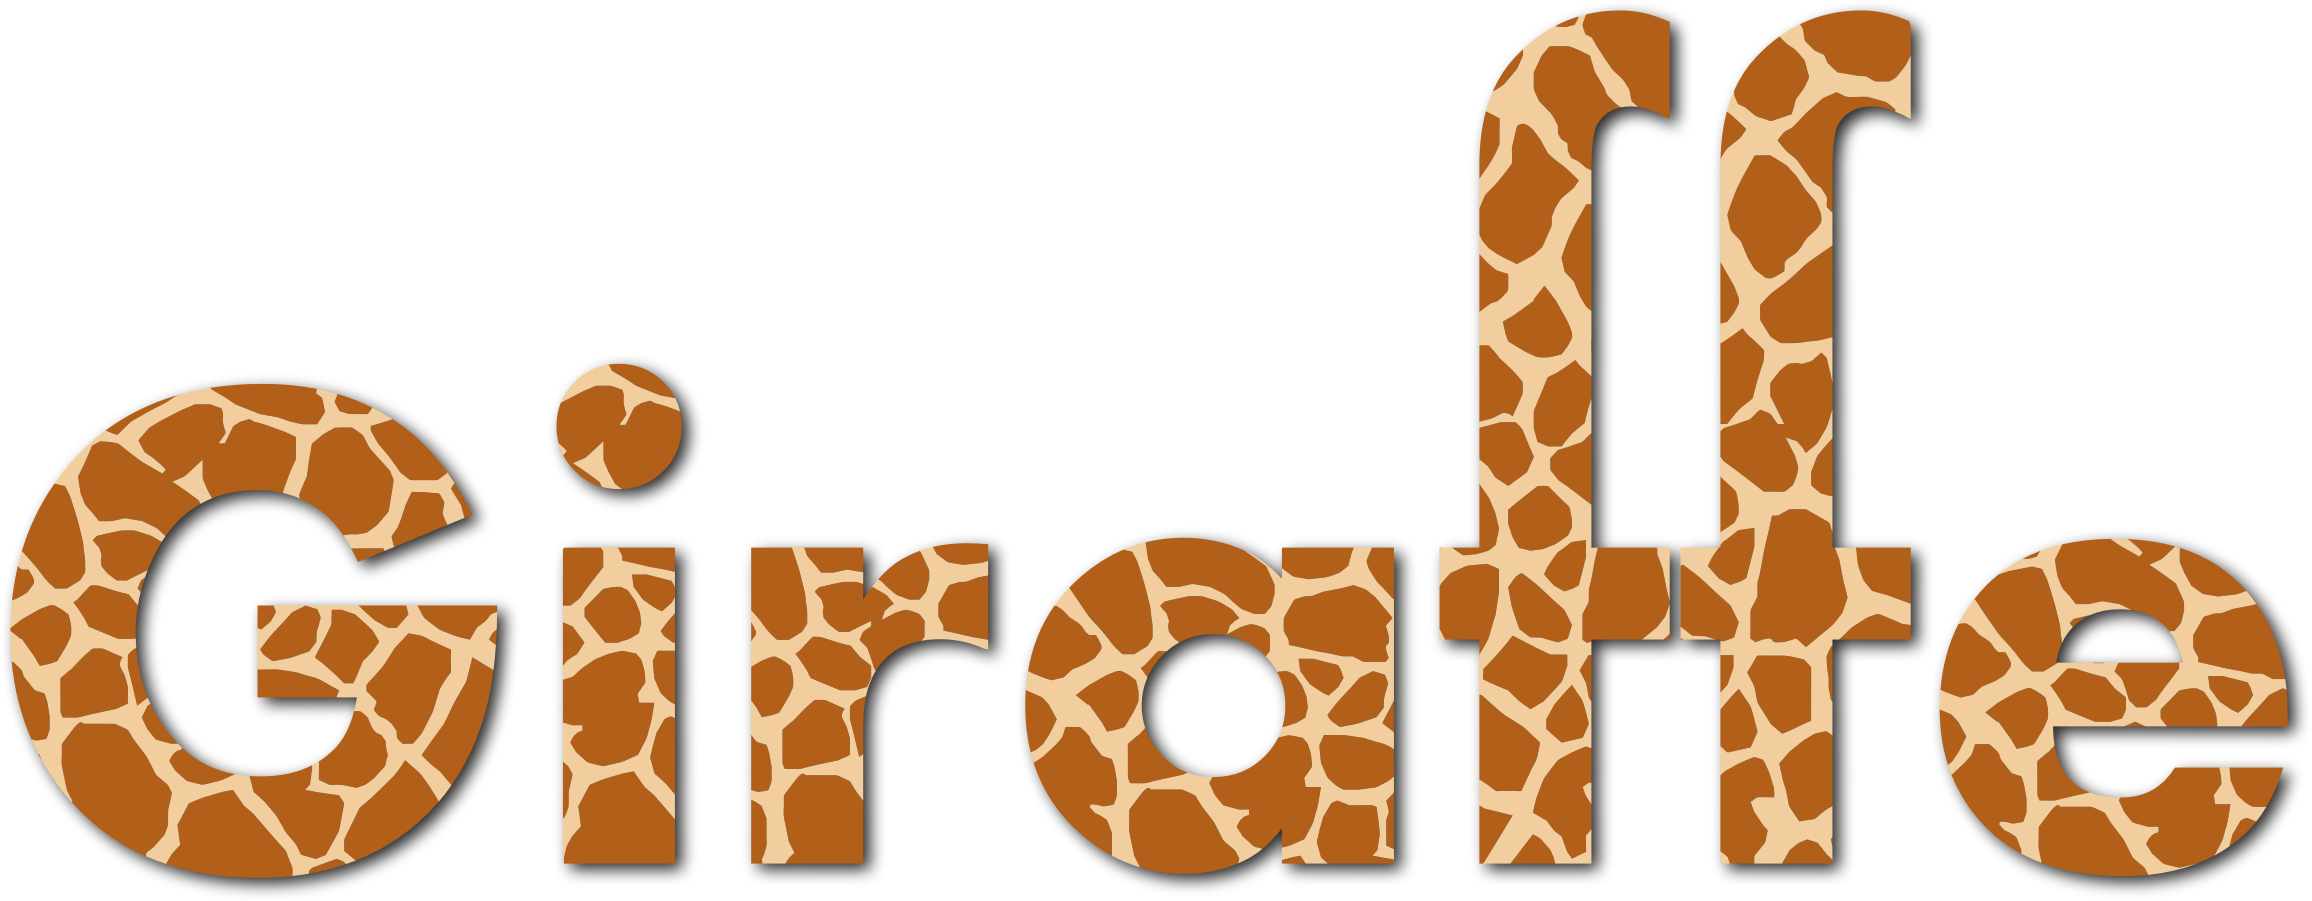 Giraffe Typography With Drop Shadow by GDJ